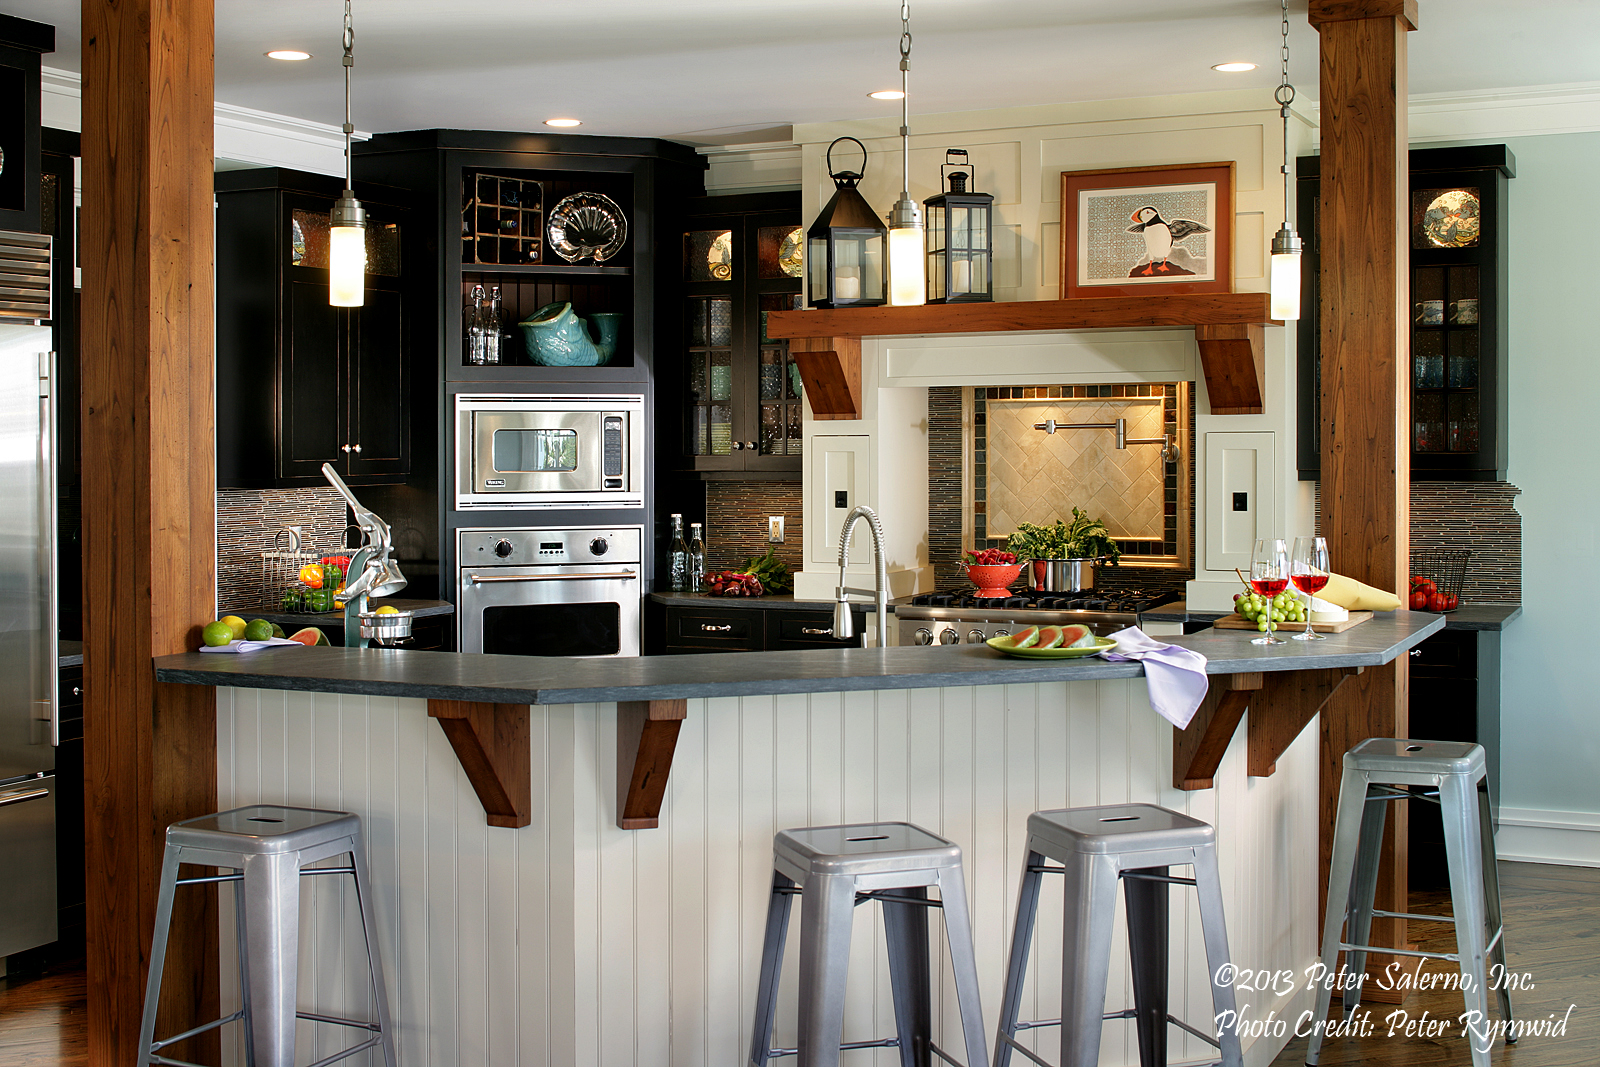 Peter rymwid design your lifestyle Summer kitchen design